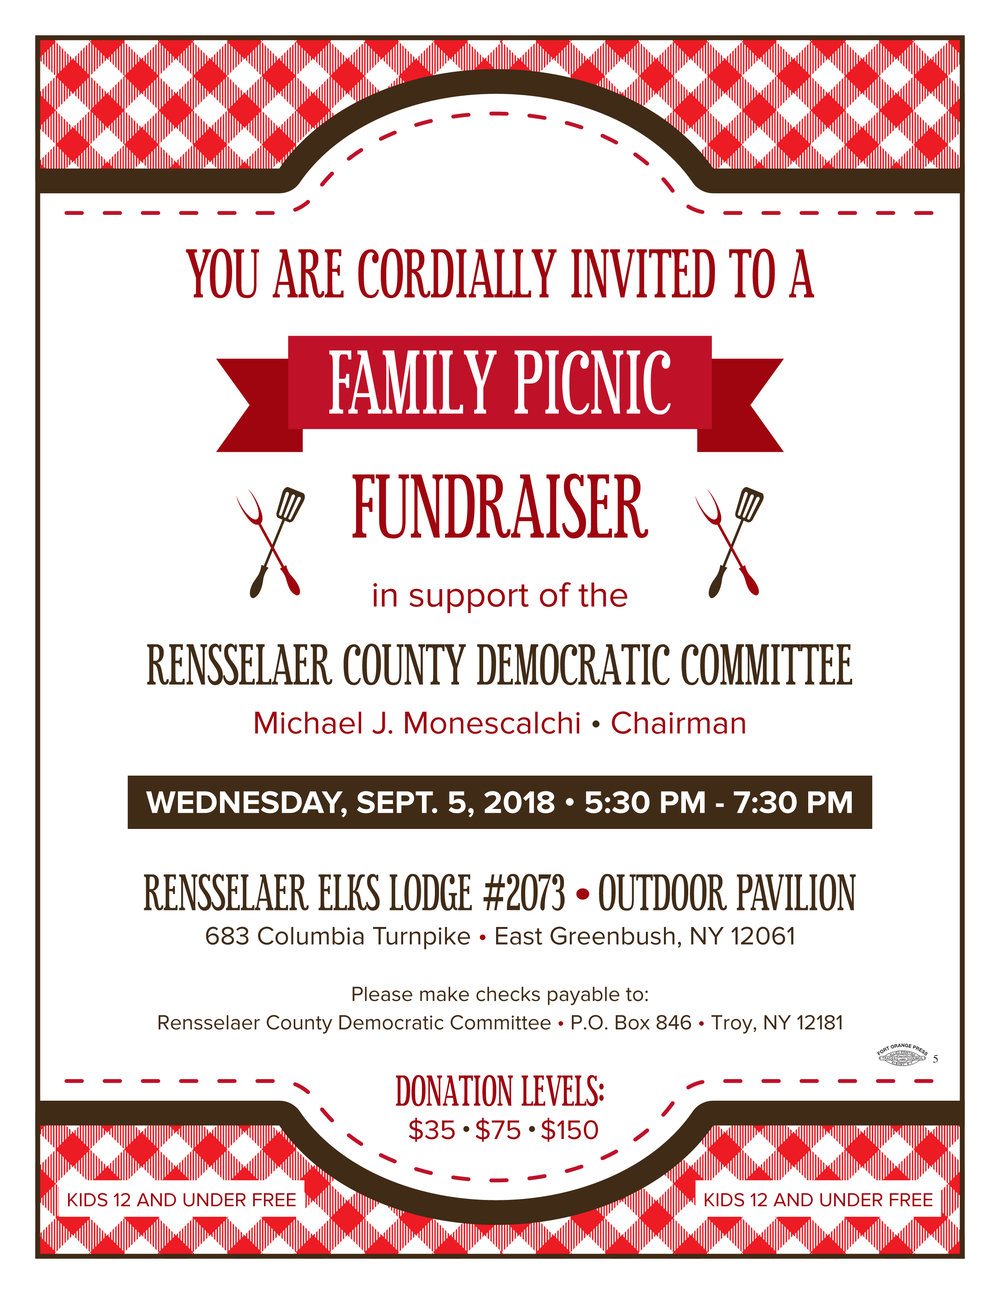 RCDC Family Picnic Fundraiser September 5 Invite.jpg